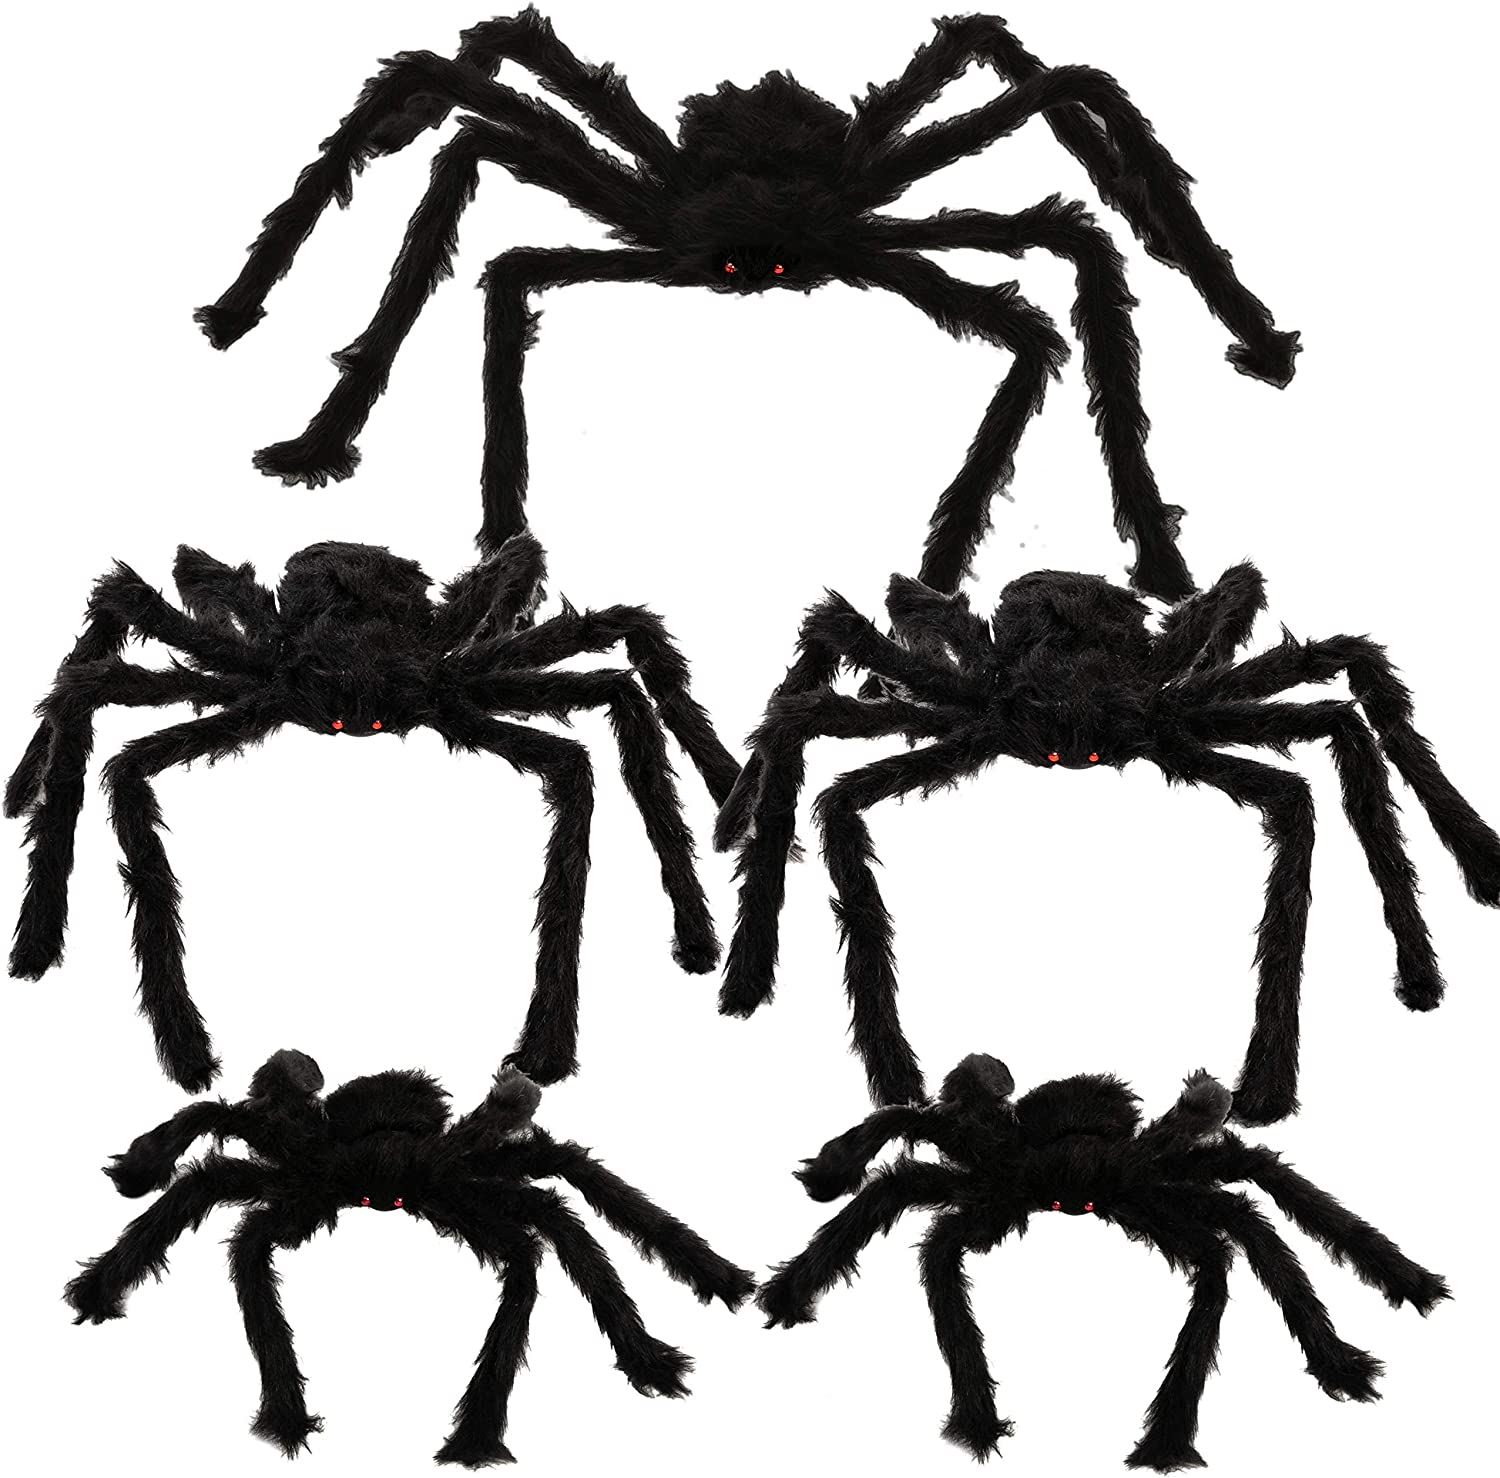 "Halloween Realistic Hairy Spiders Set (5 Pack), Halloween Spider Props, Scary Spiders with Different Sizes for Indoor and Outdoor Decorations (35"", 30"", 30"", 24"", 24"")"